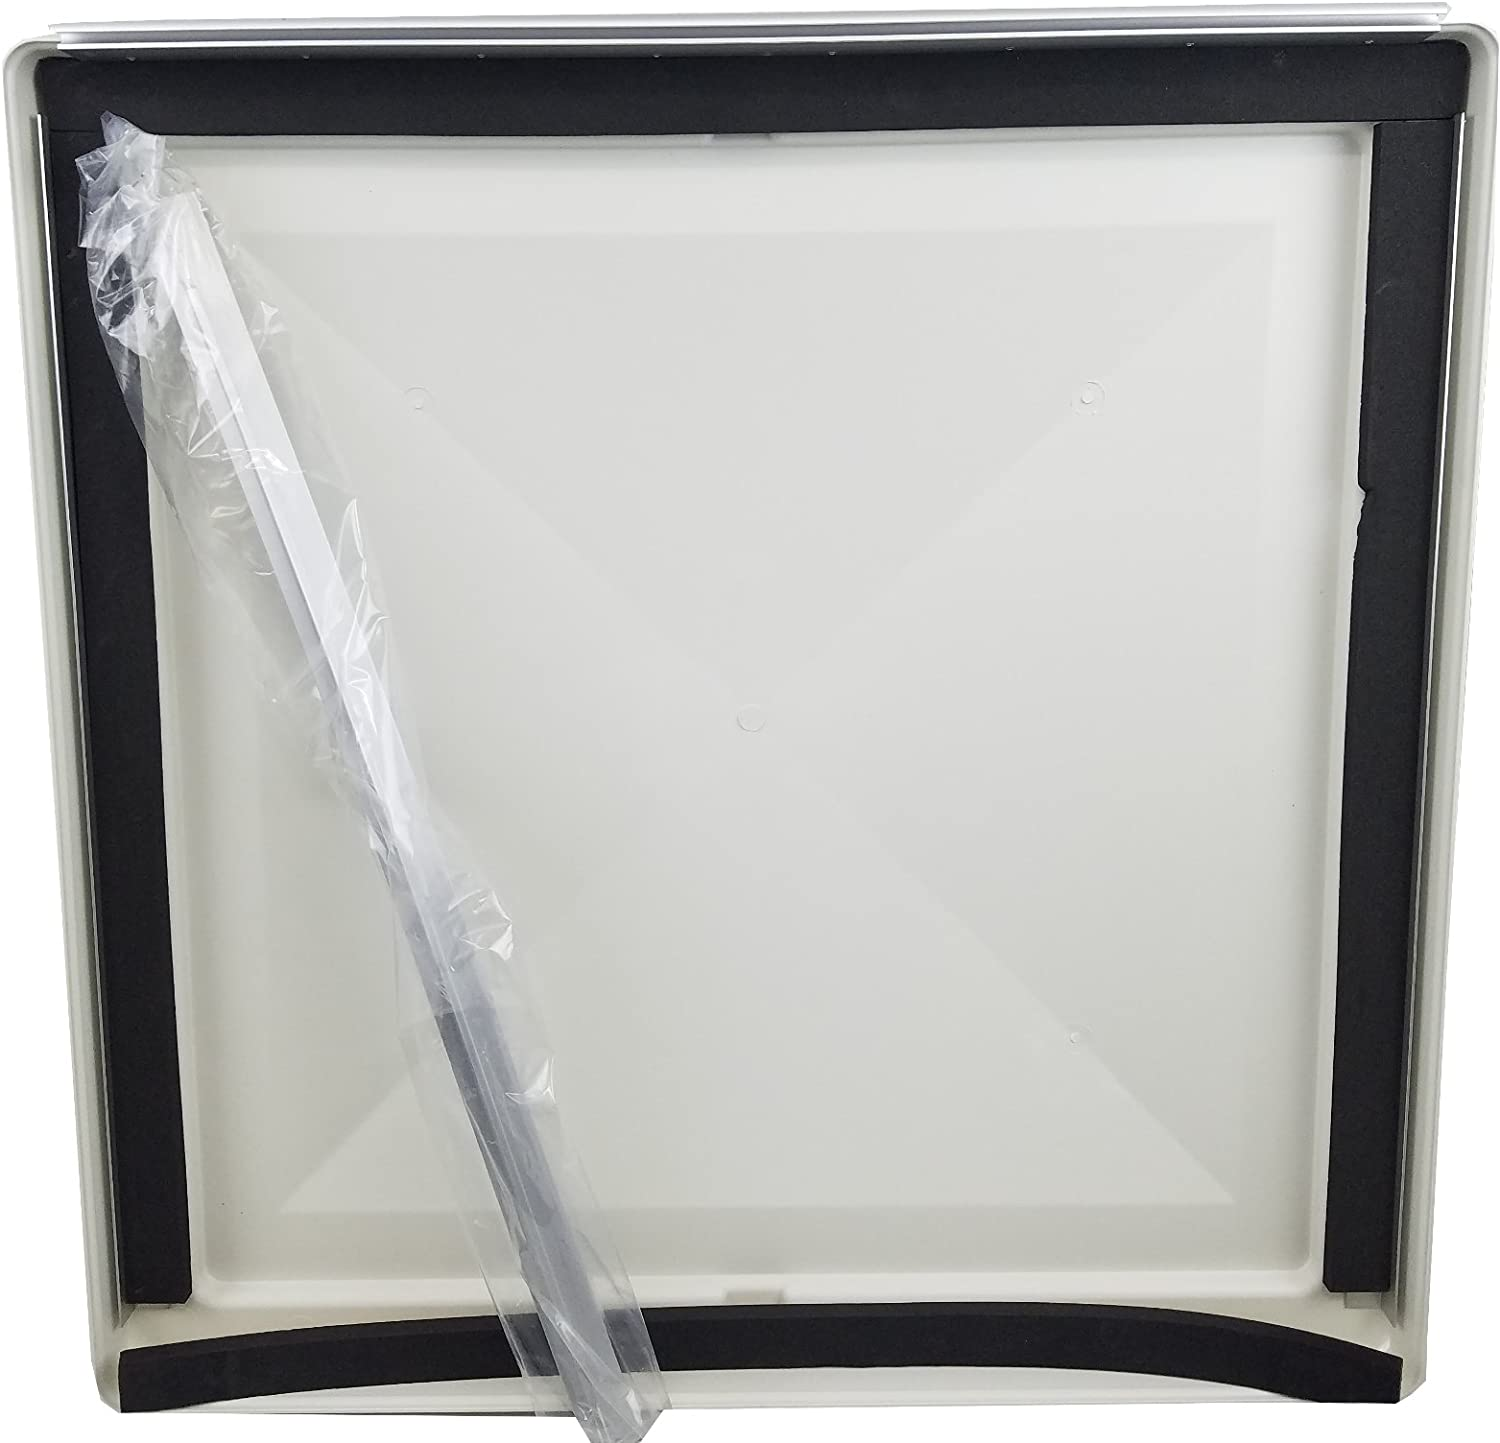 Hengs 90014-C1-LO Escape Hatch LID ONLY fits Current Model 68631-C2 rv Camper Trailer Roof